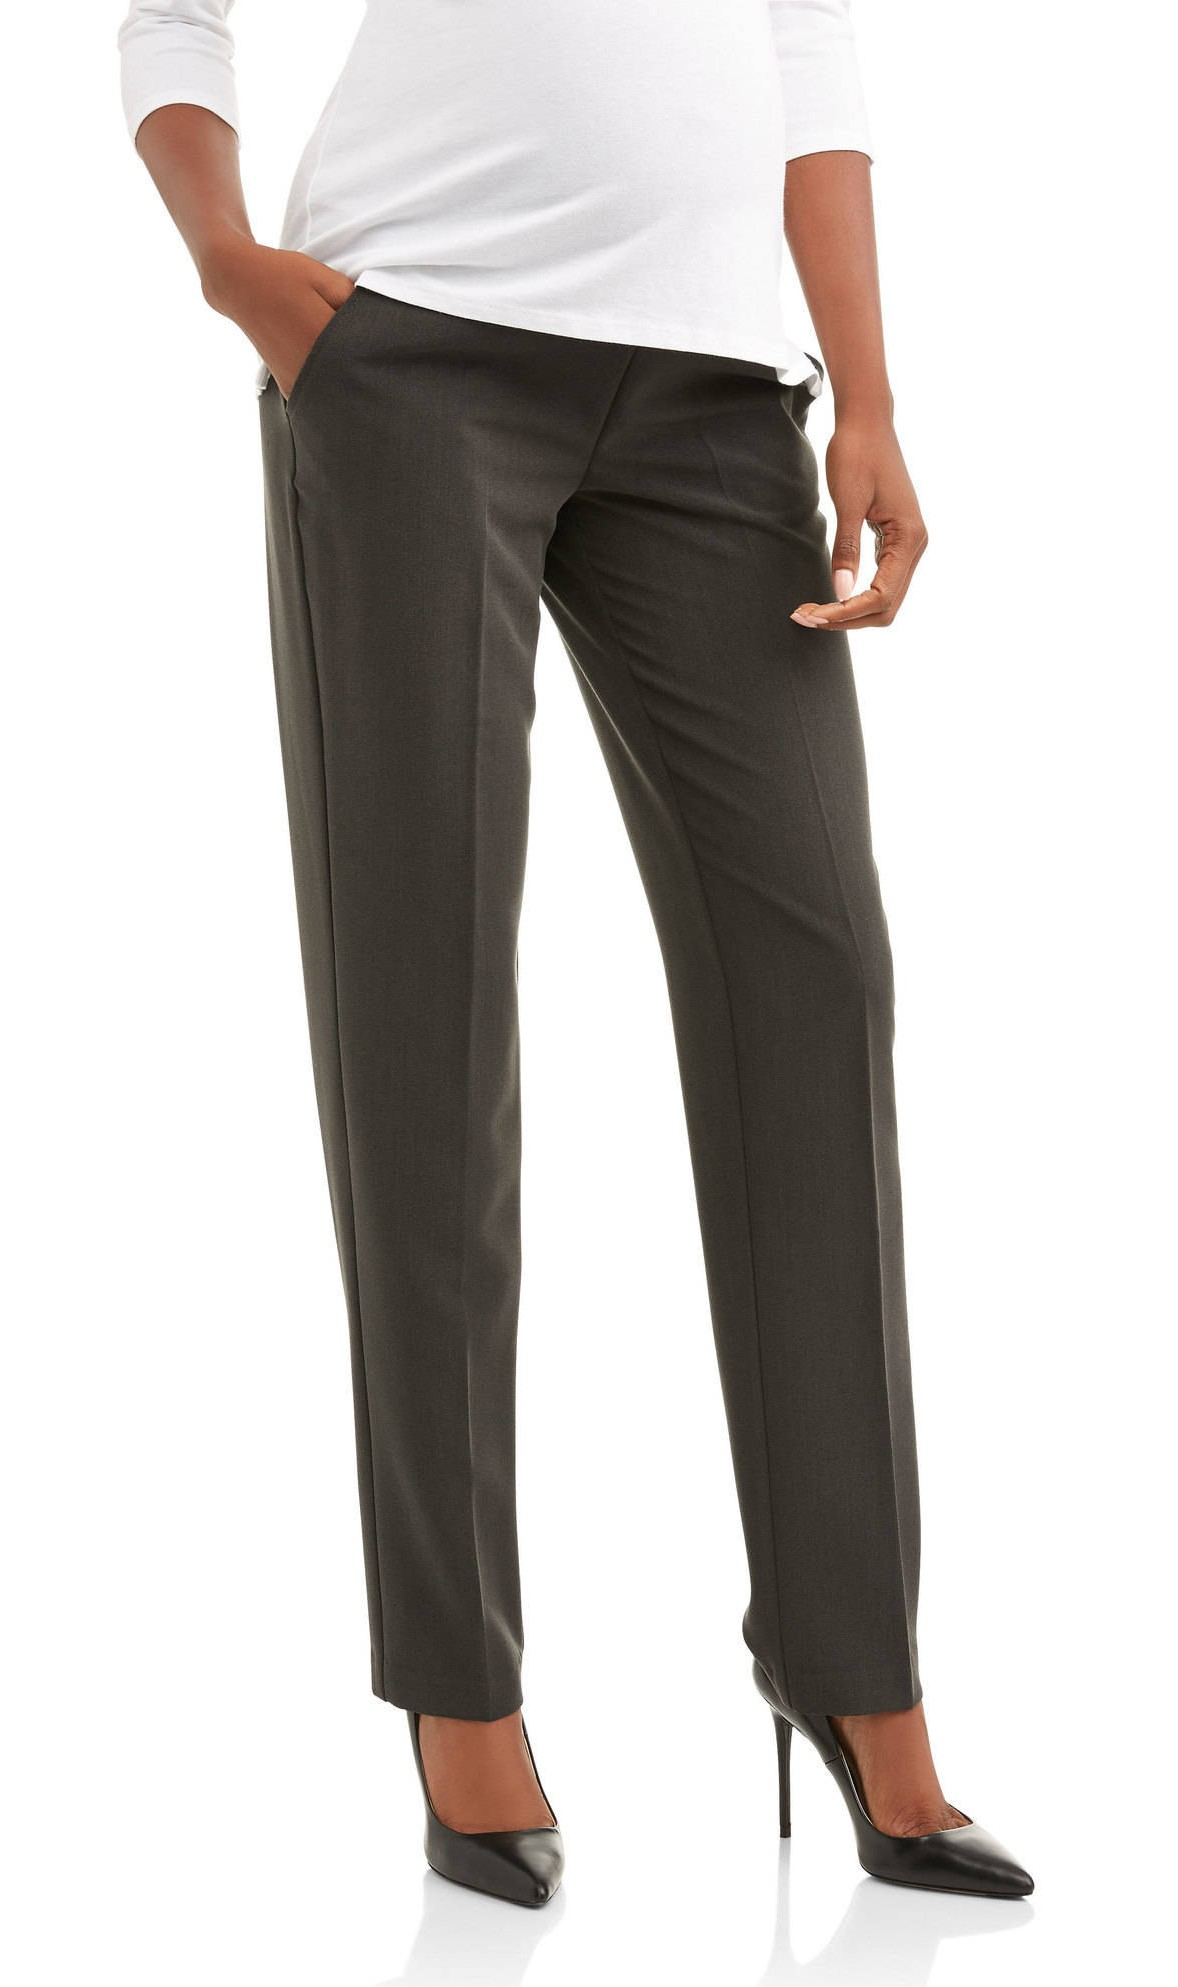 Maternity Oh! Mamma Straight Leg Career Pant with Full Panel (Available in Plus Sizes) (Walmart)